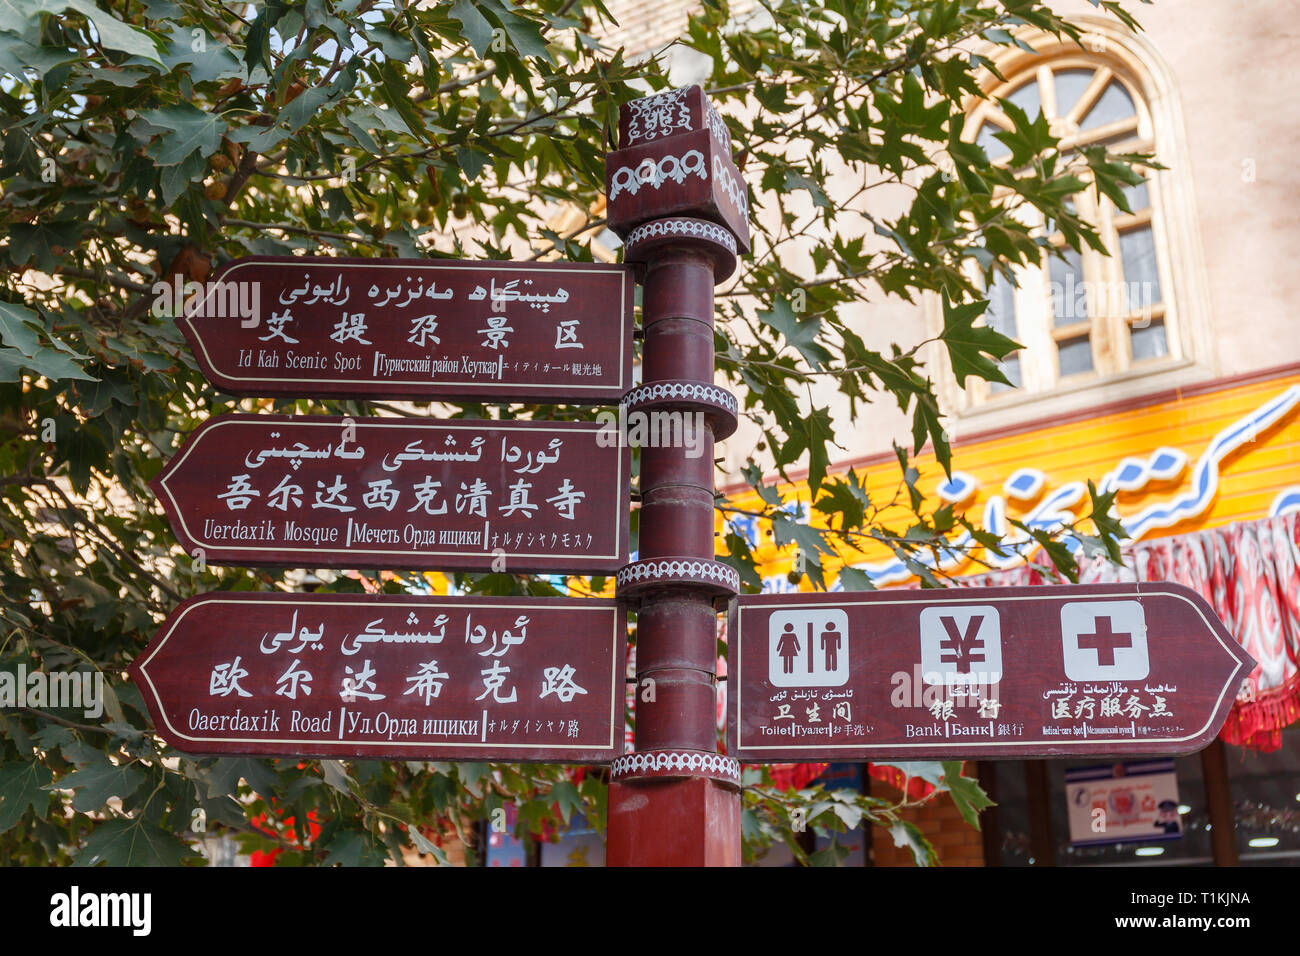 Multi-lingual directional signs in Kashgar Old Town. Pointing towards scenic spots (like Id Kah Mosque) and other useful destinations (like toilets). - Stock Image